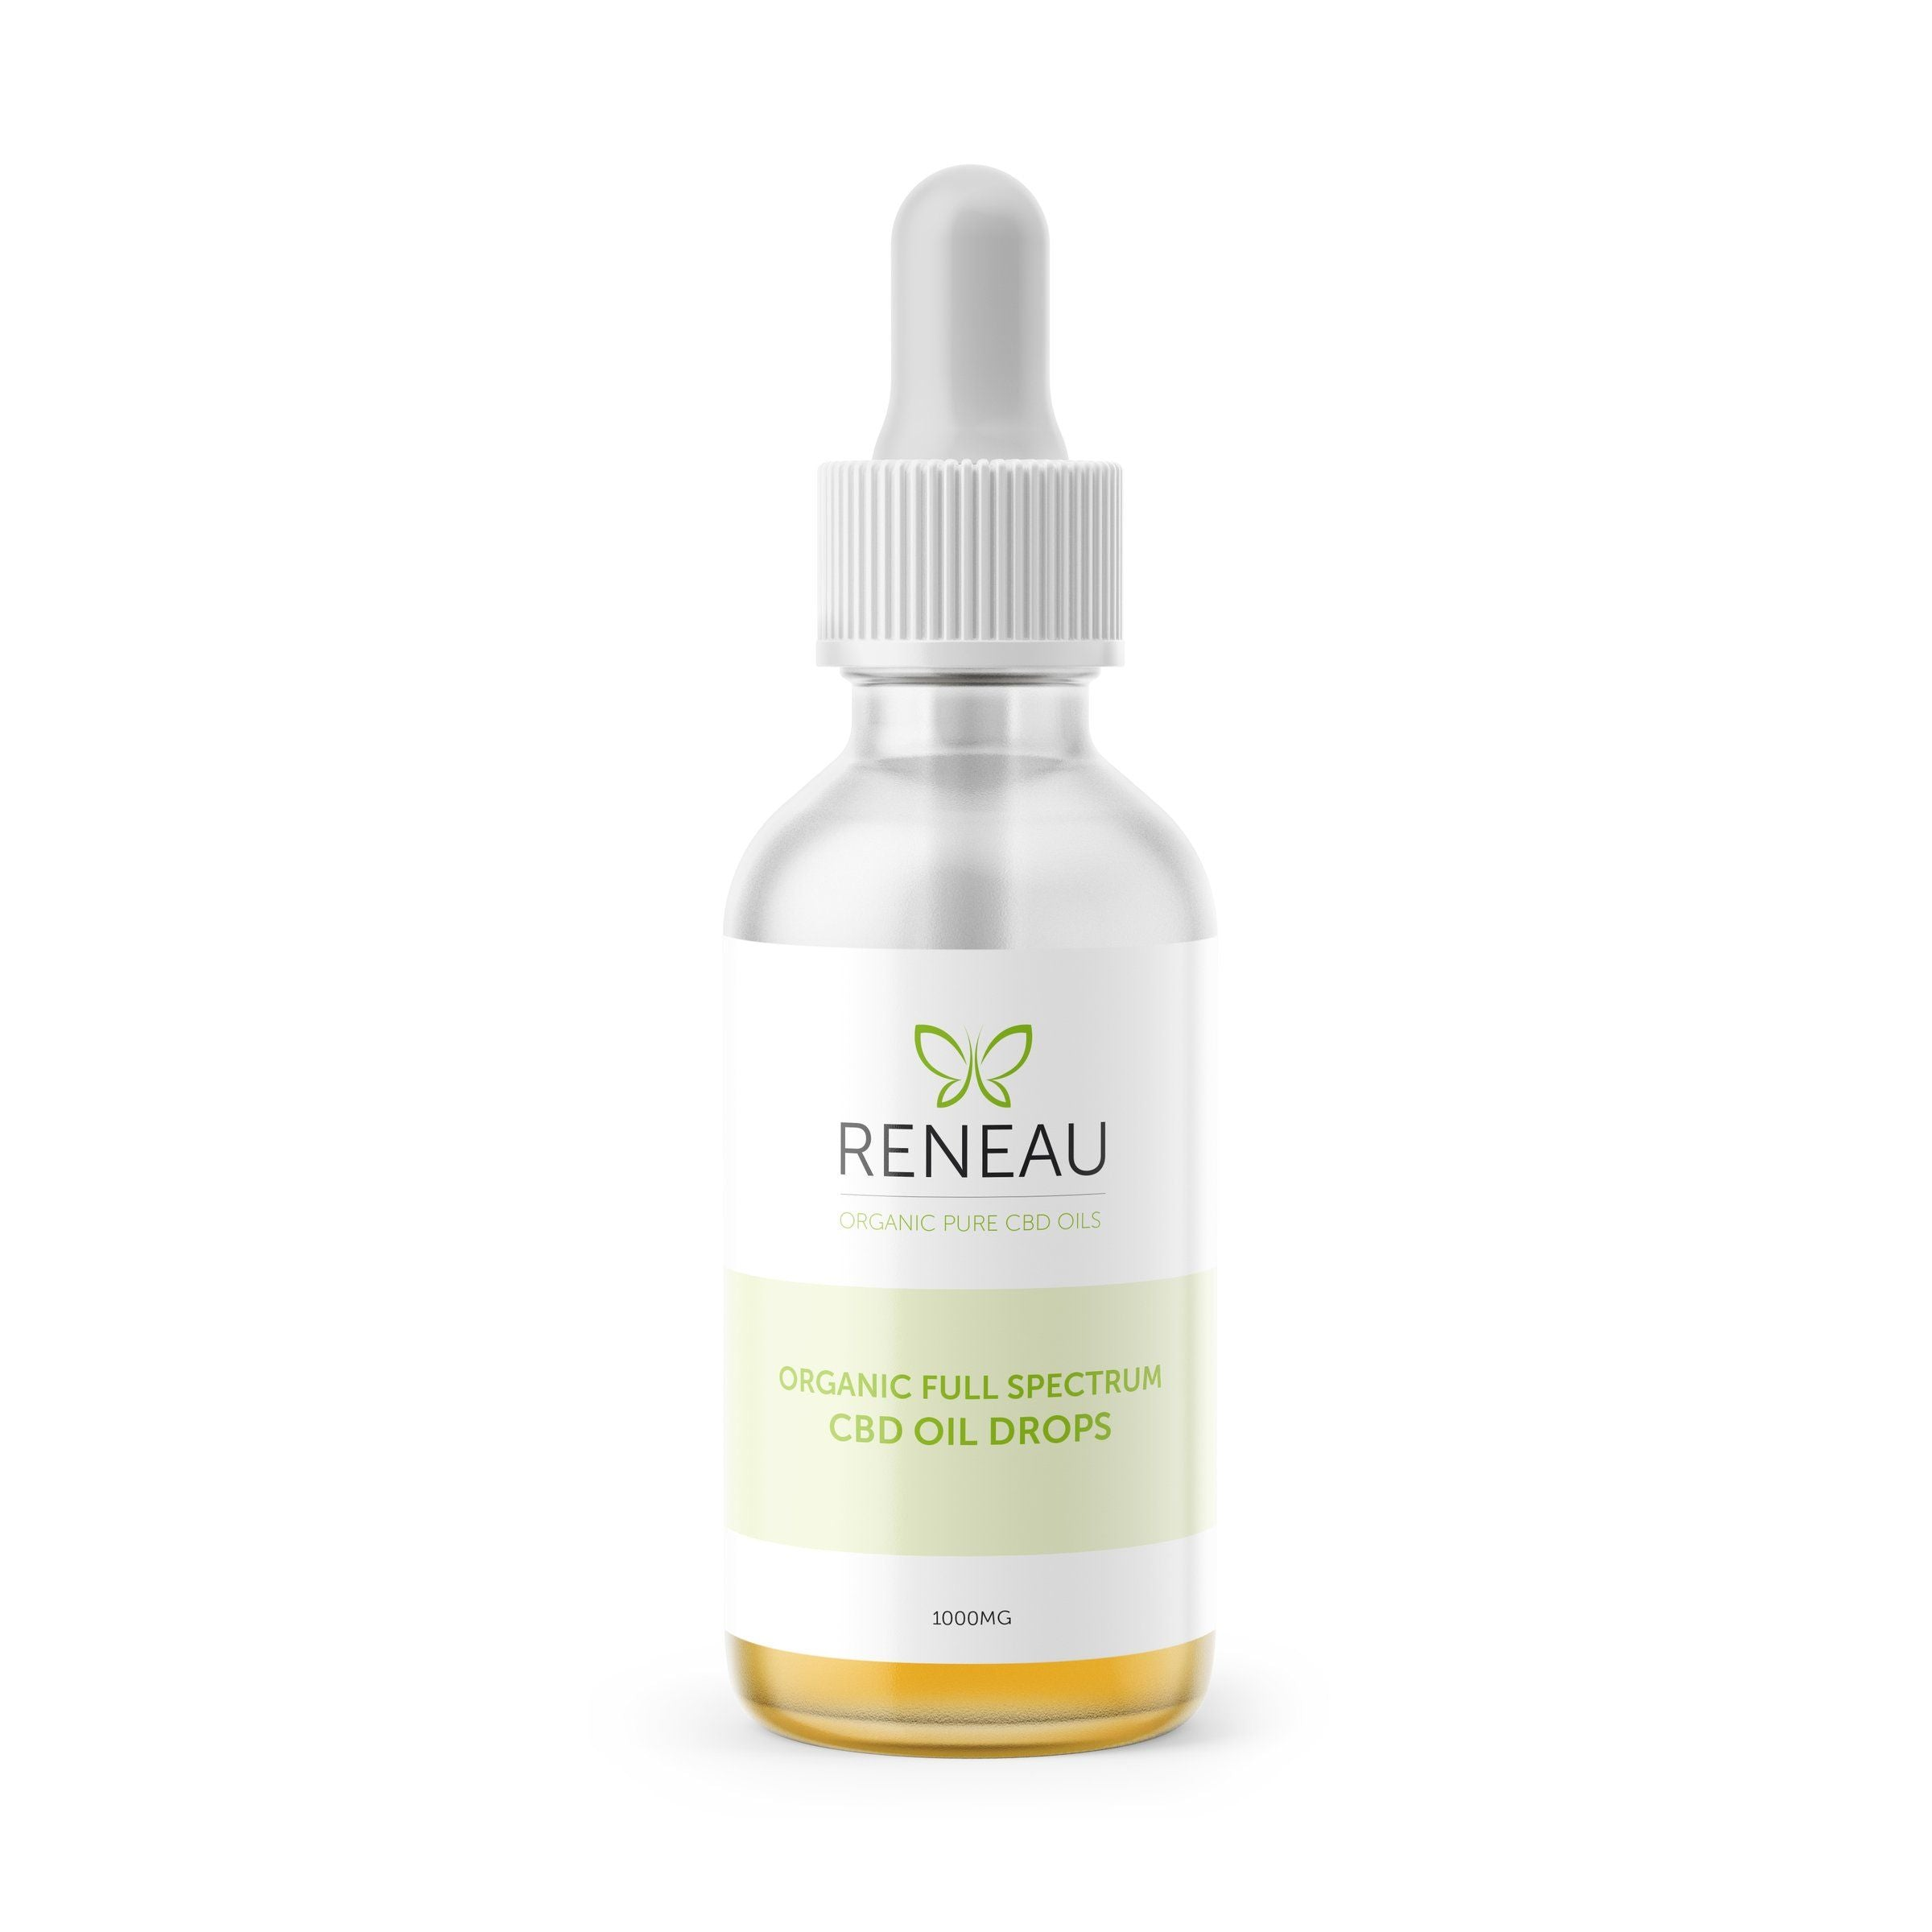 tincture bottle of organic full spectrum cbd oil by reneau_organic cbd well-being